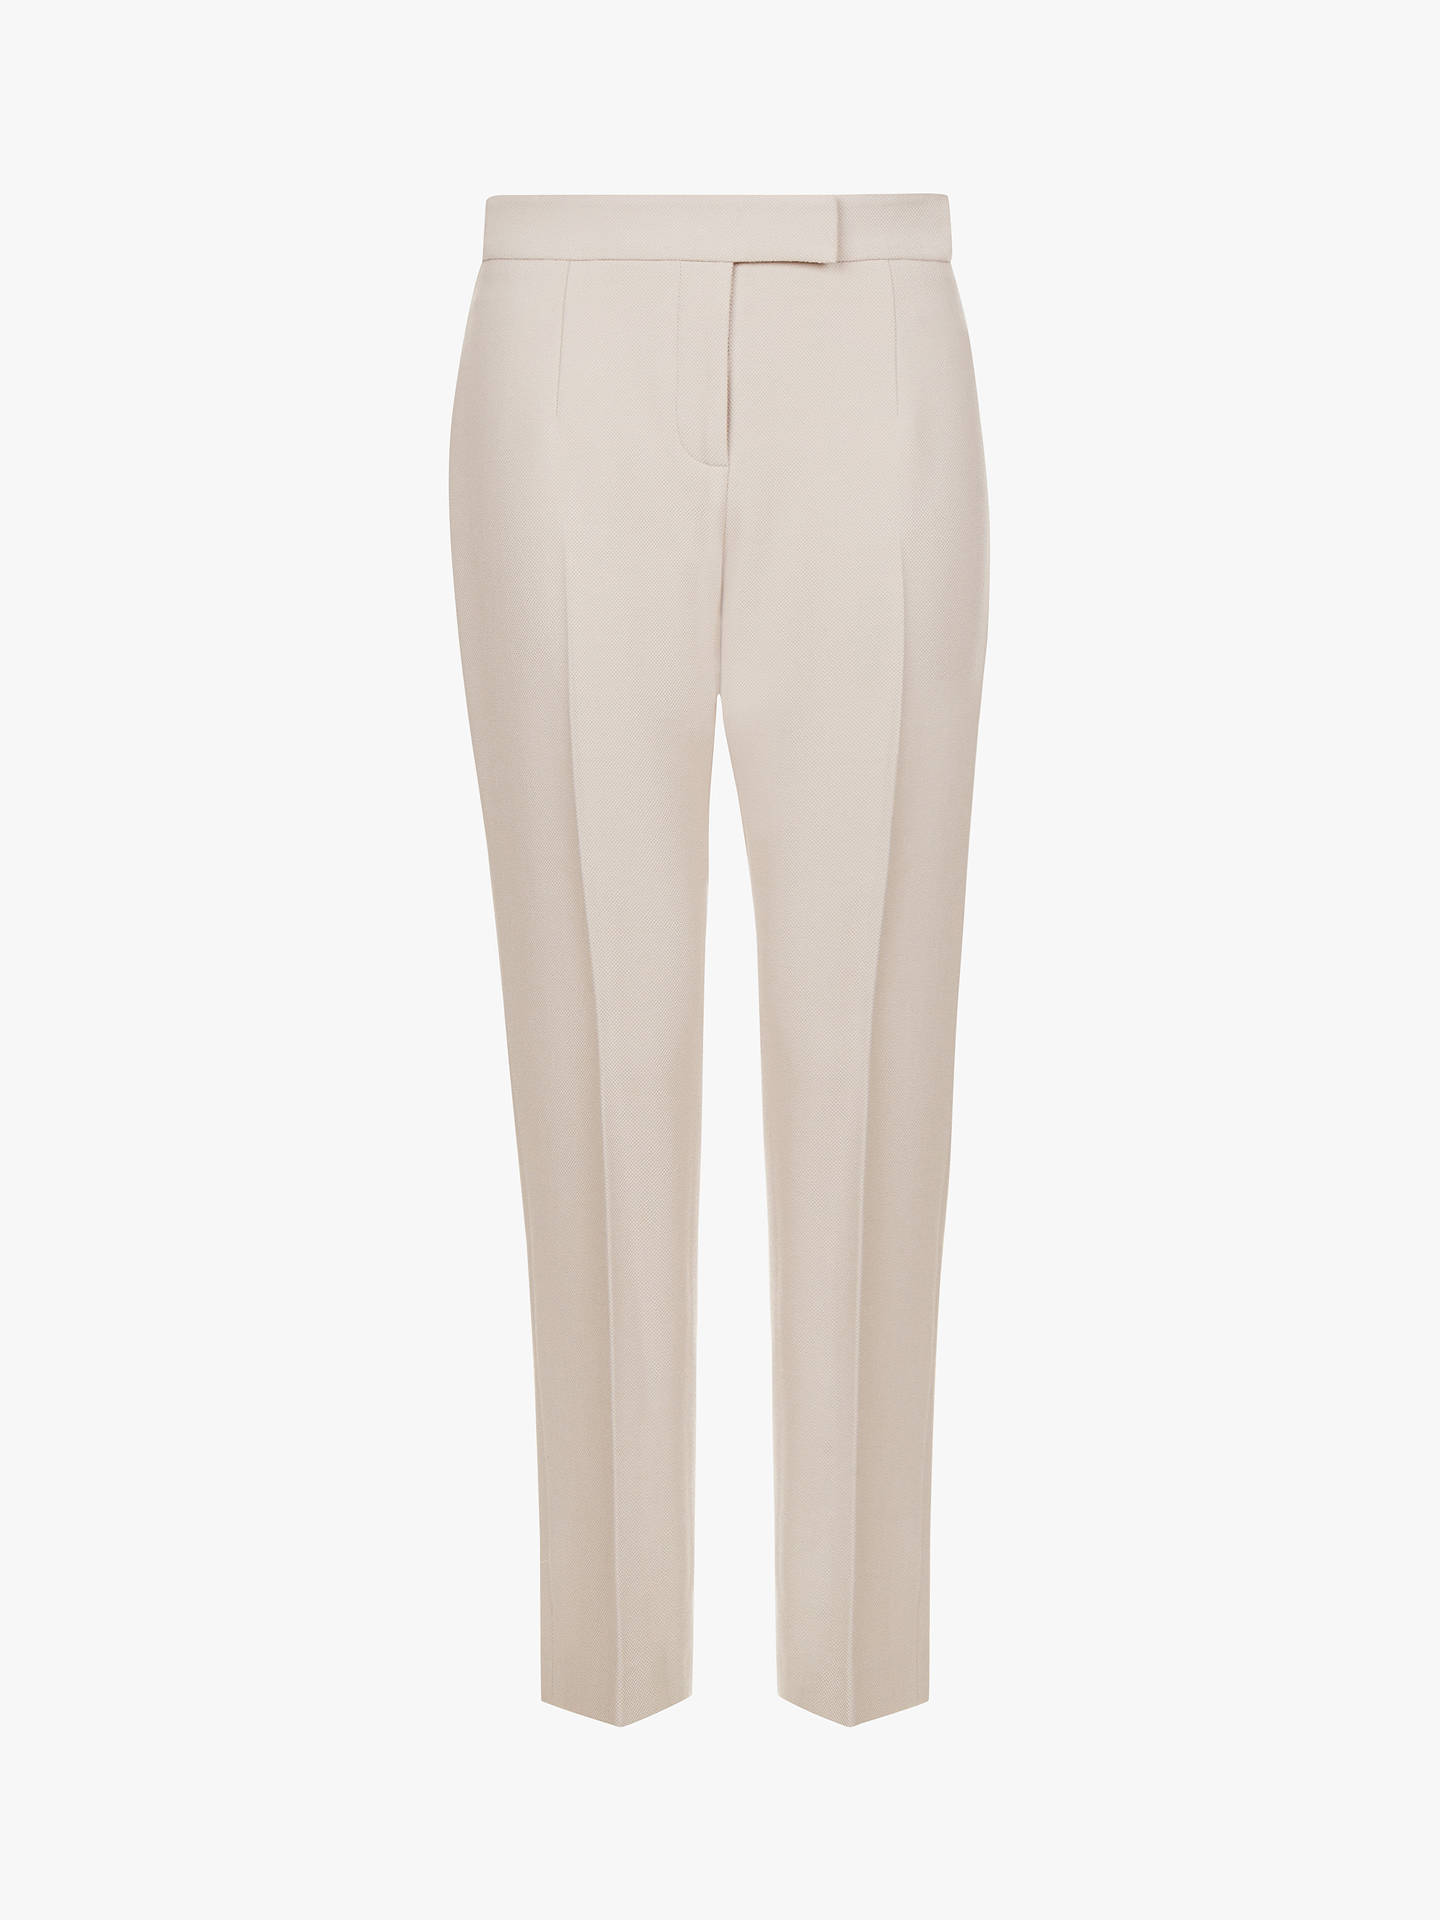 Buy Hobbs Viviene Tailored Trousers, Neutral, 6 Online at johnlewis.com